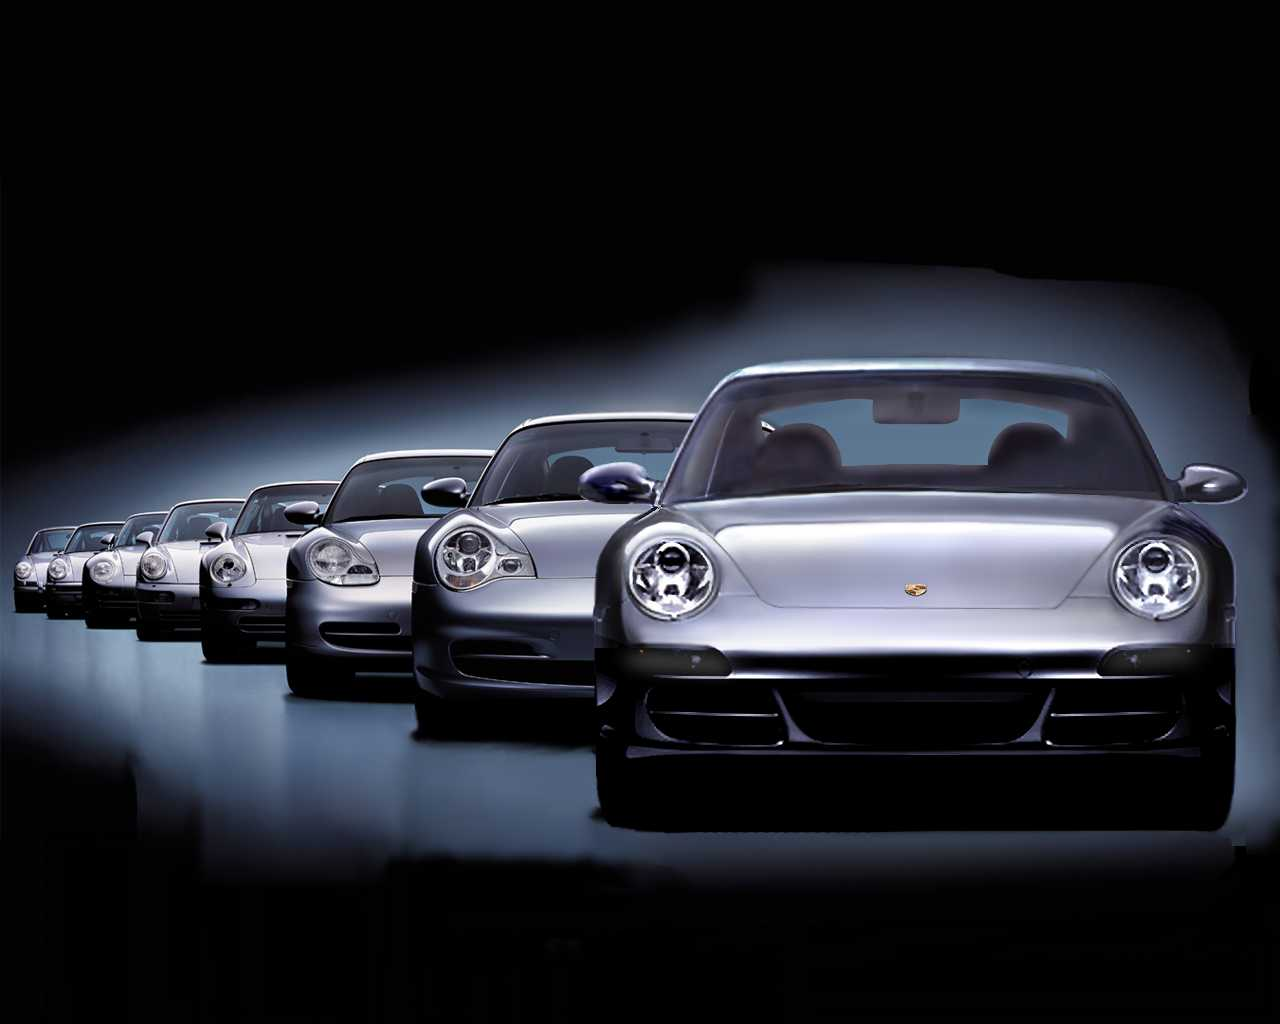 automobile and porsche Porsche through the years porsche was founded in stuttgart, germany by ferdinand porsche in 1931 at the time, porsche himself was an experienced automotive engineer who previously worked for daimler building sports cars like the mercedes ss and ssk.